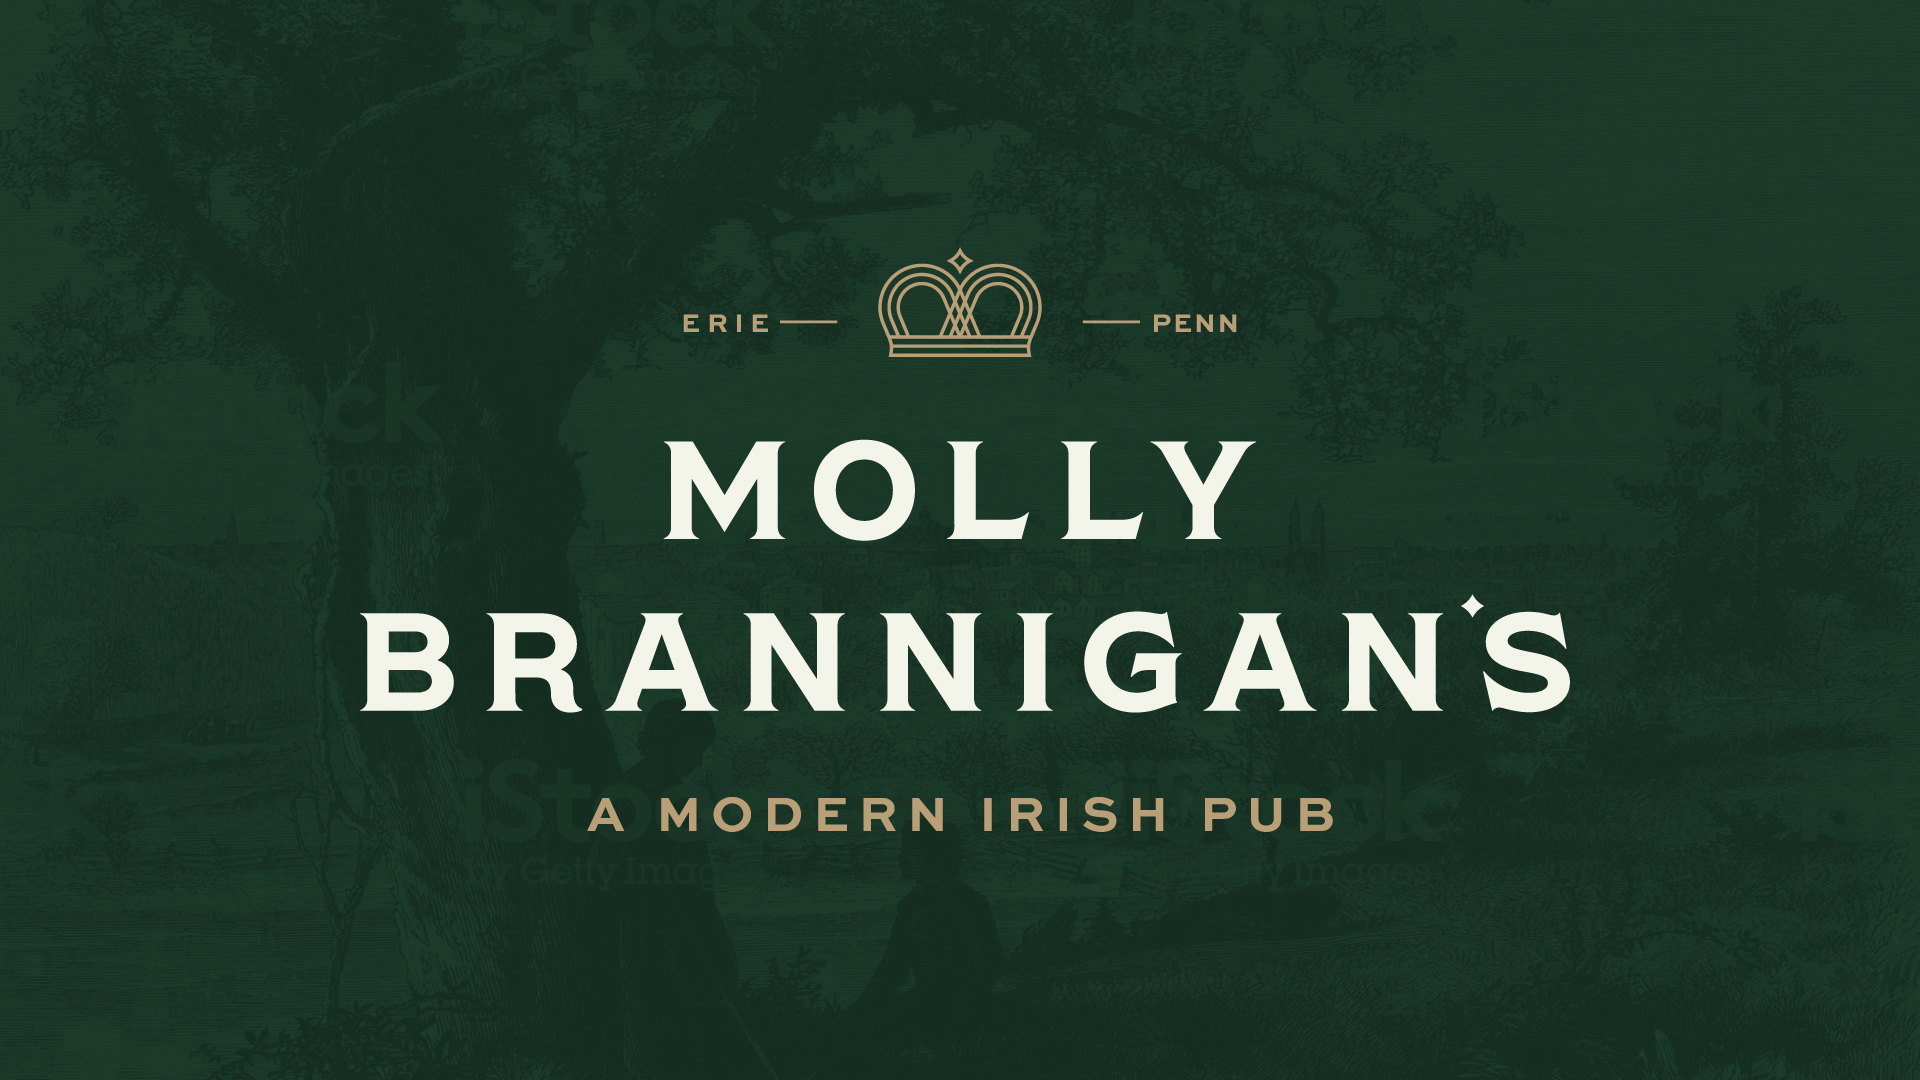 molly-brannigans-logo-green